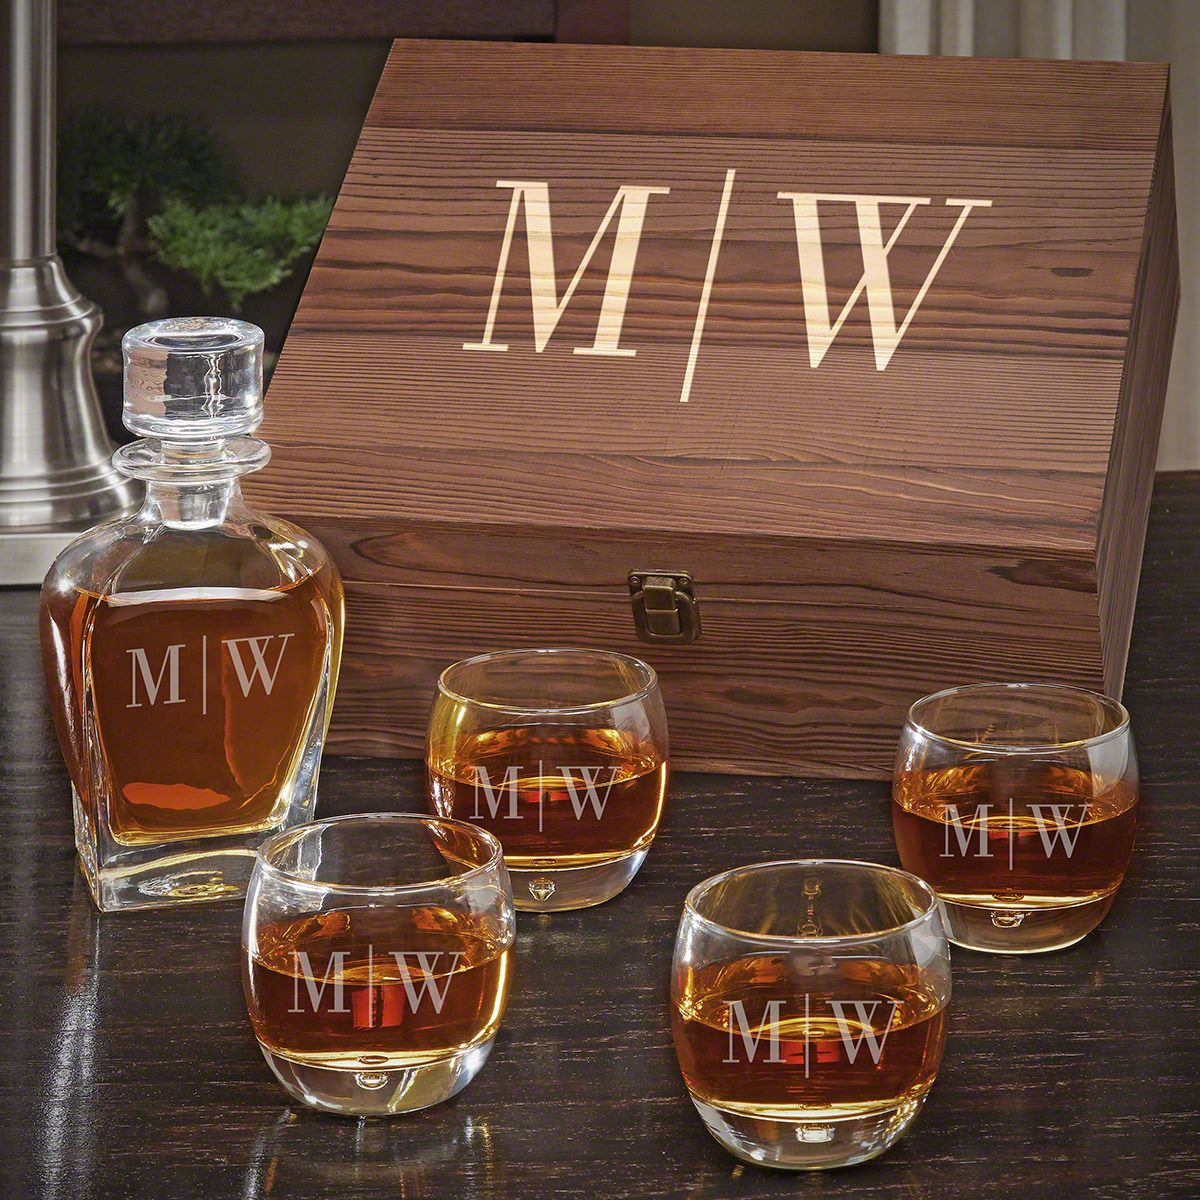 Quinton Draper Decanter Personalized Whiskey Gift Set with Uptown Glasses